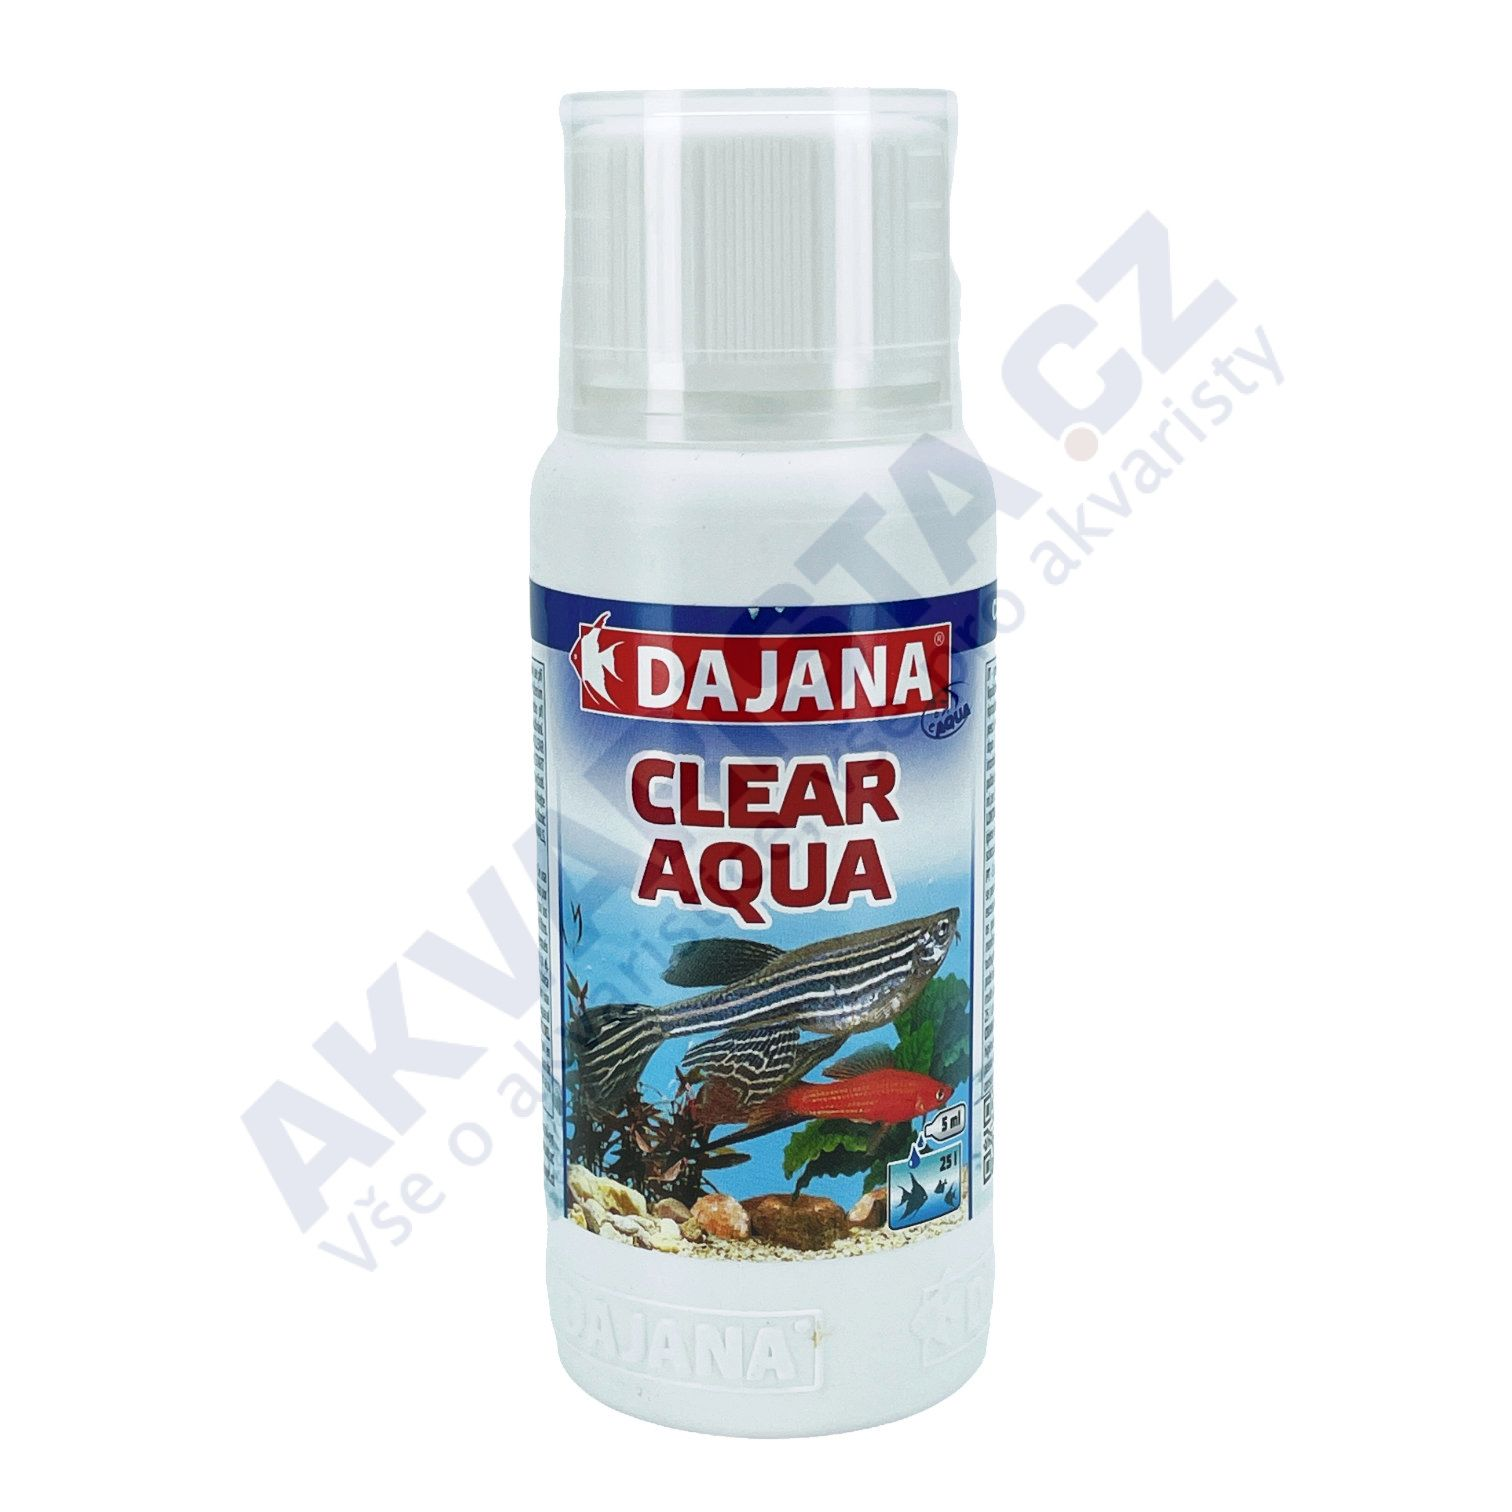 Dajana CLEAR aqua 1000ml